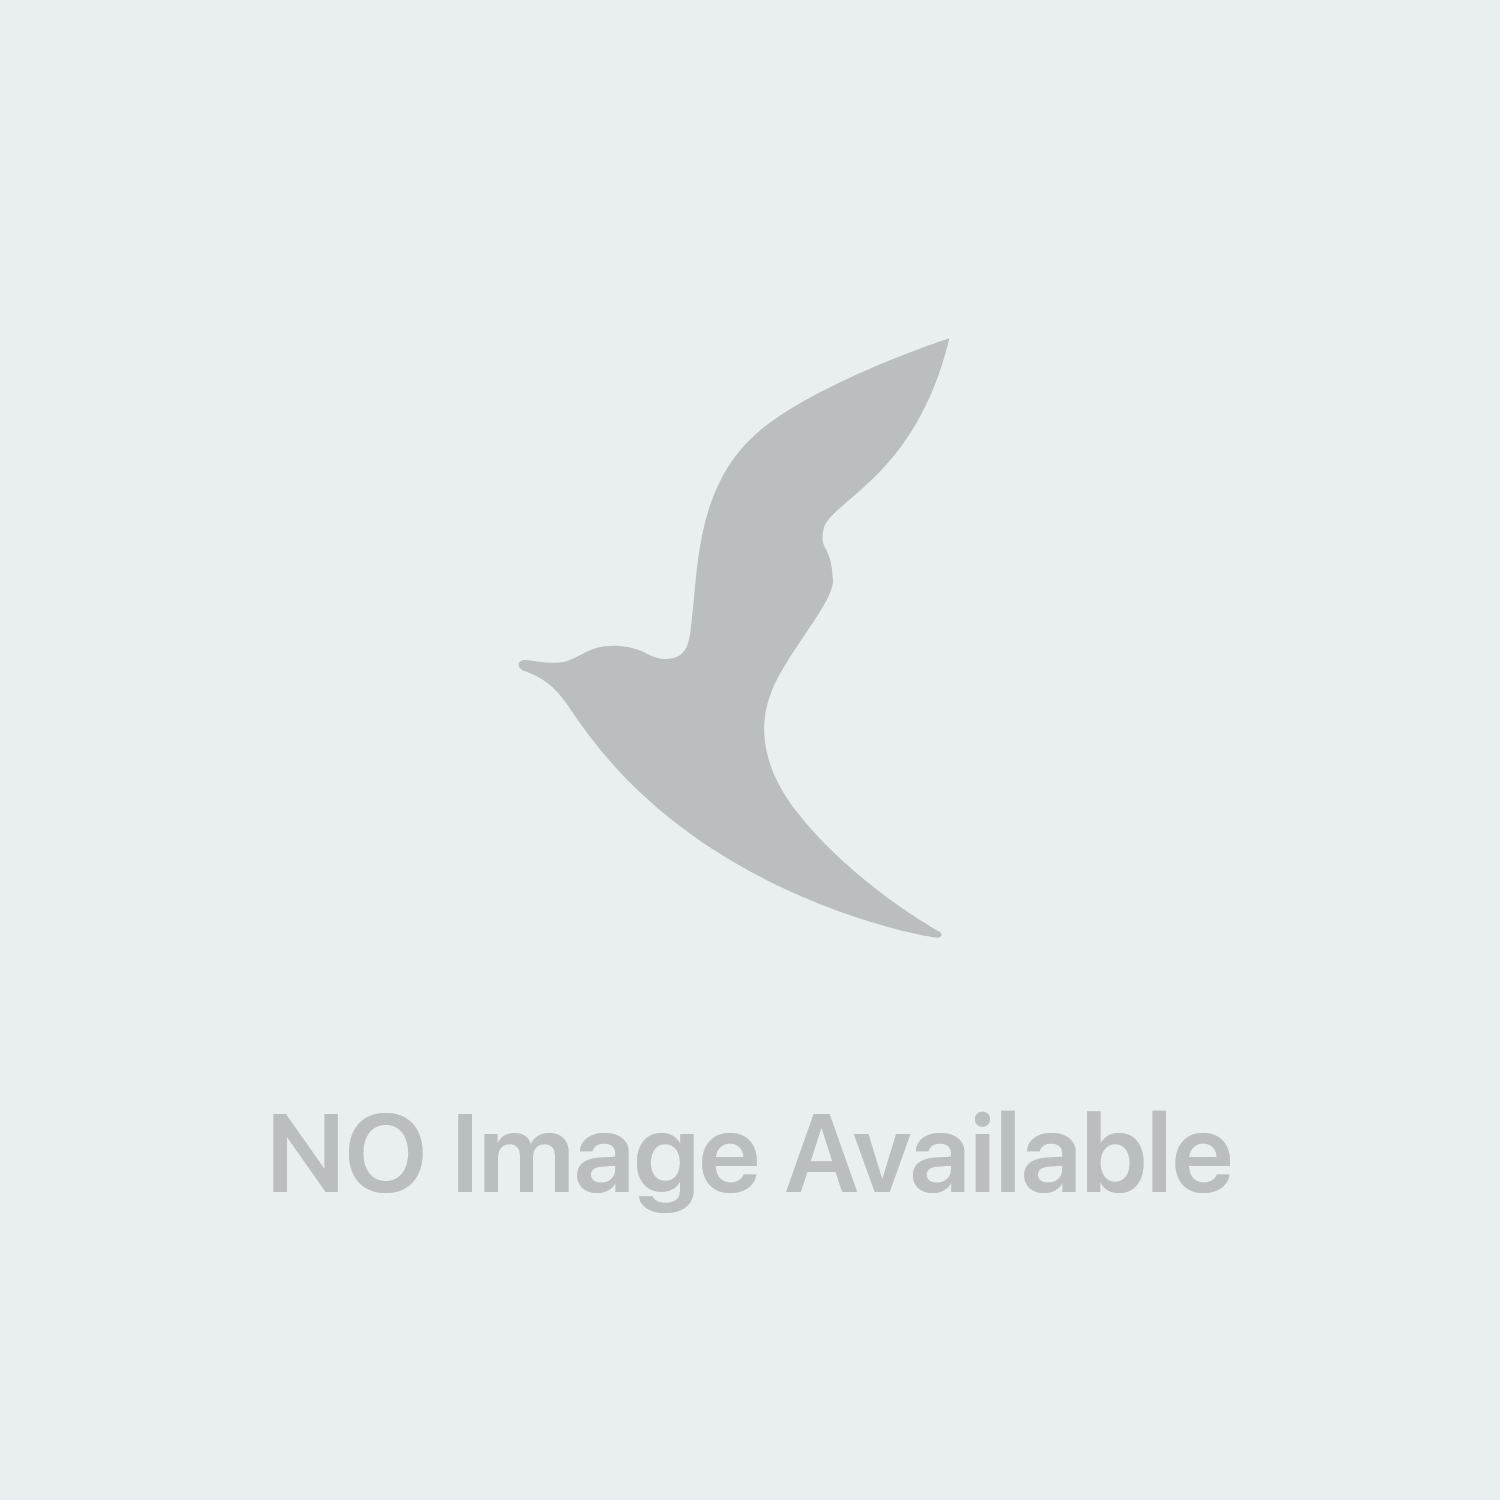 Physiomer CSR Spray Pulizia Nasale Getto Normale 135 ml